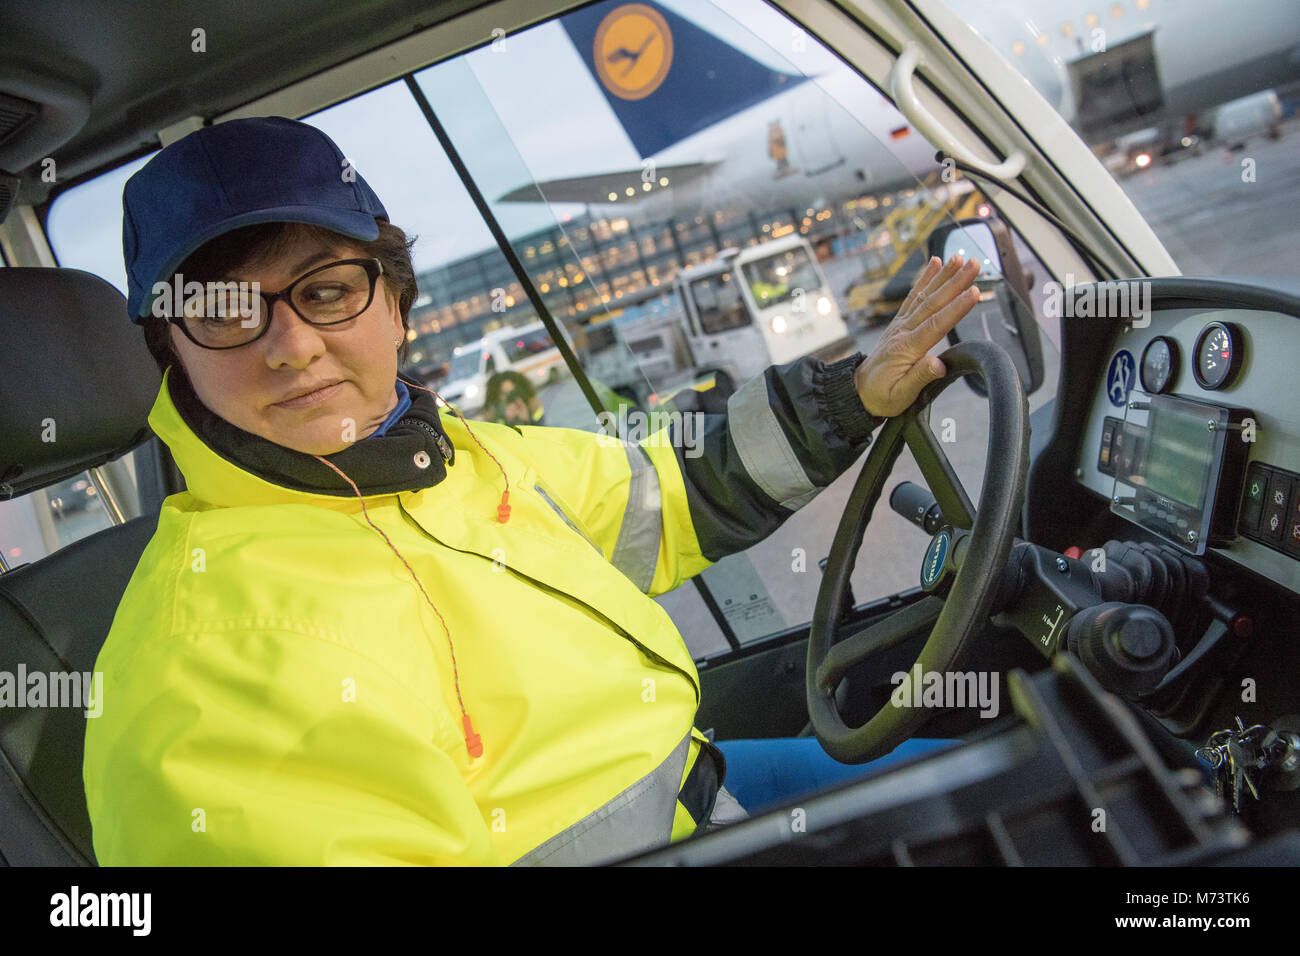 08 March 2018, Germany, Frankfurt: Danuta Keller, luggage driver, driving the luggage for the Lufthansa Airbus A - Stock Image